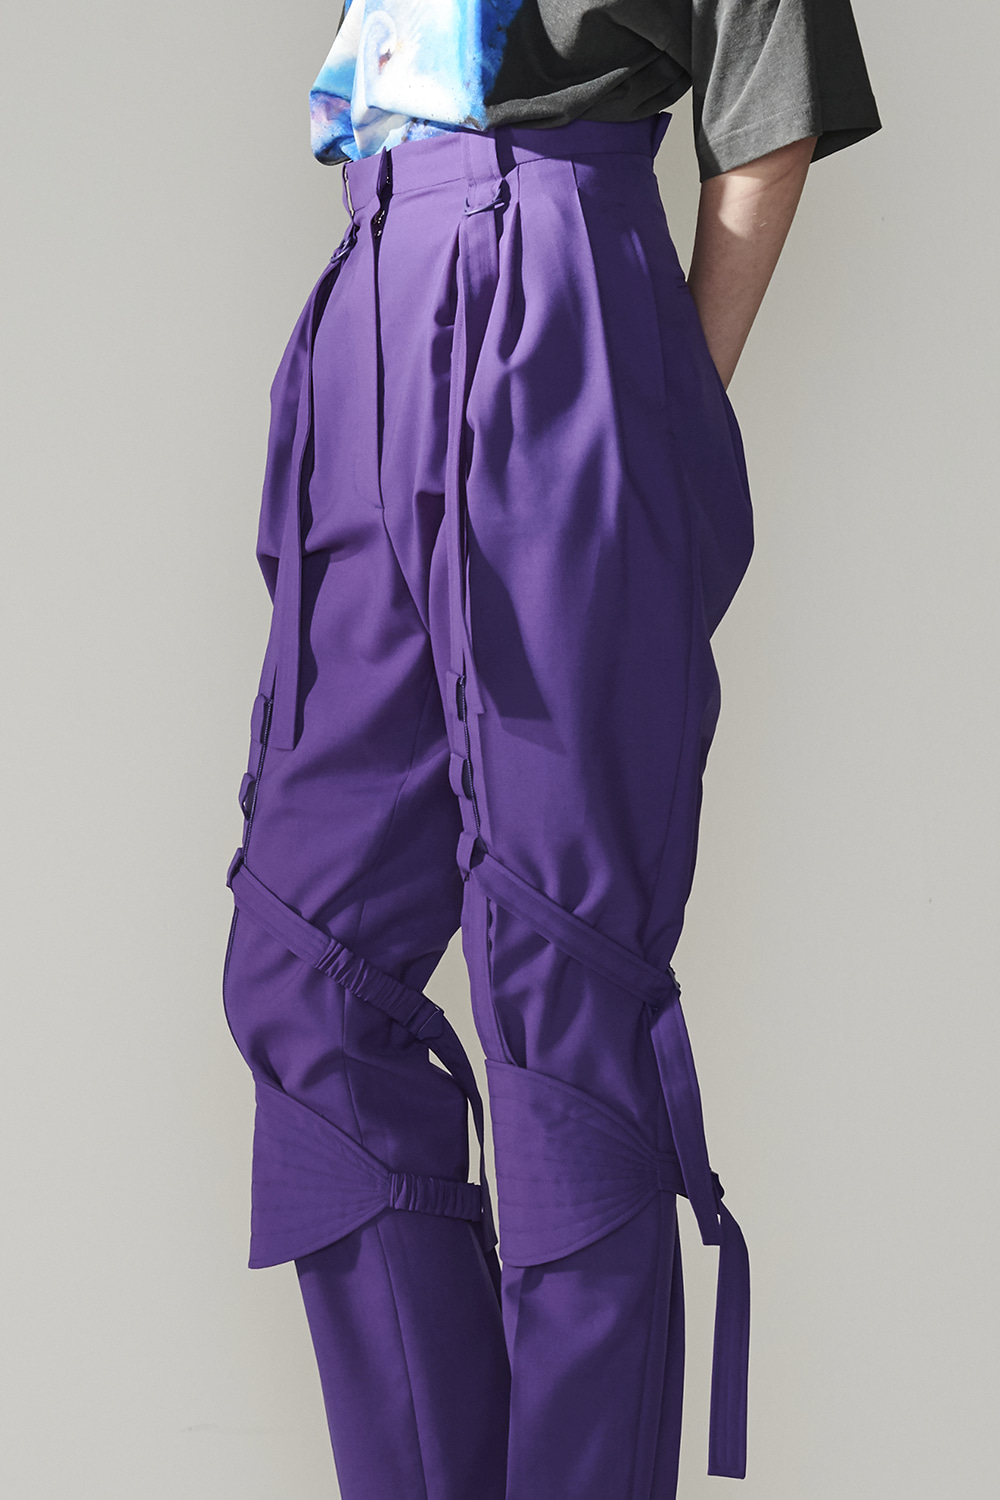 SS21 DETACHABLE KNEE PAD VIOLET PANTS